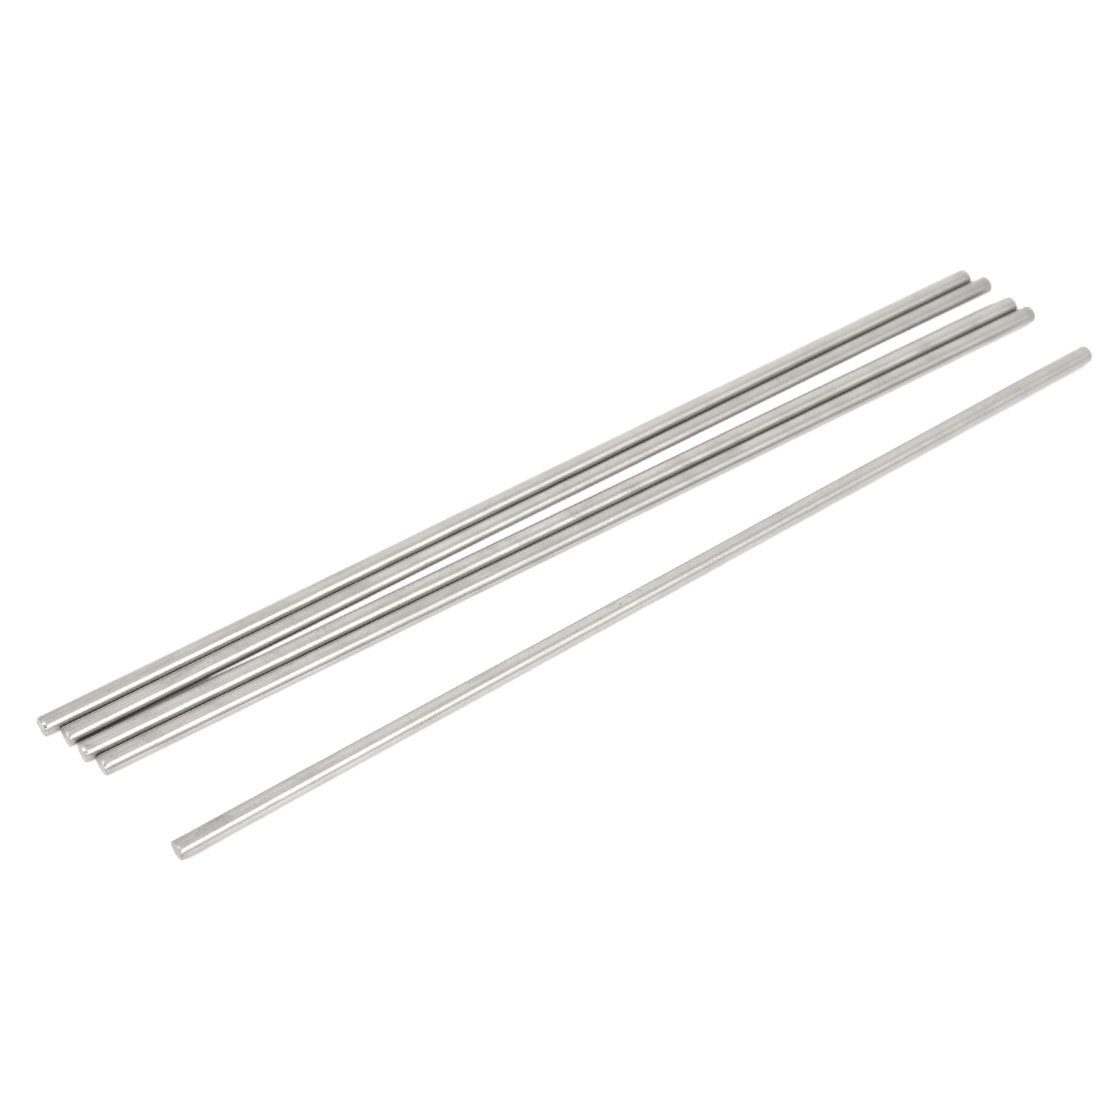 5 Pcs 3mm Dia 14.5cm Long Stainless Steel RC Helicopter Transmission Round Rods